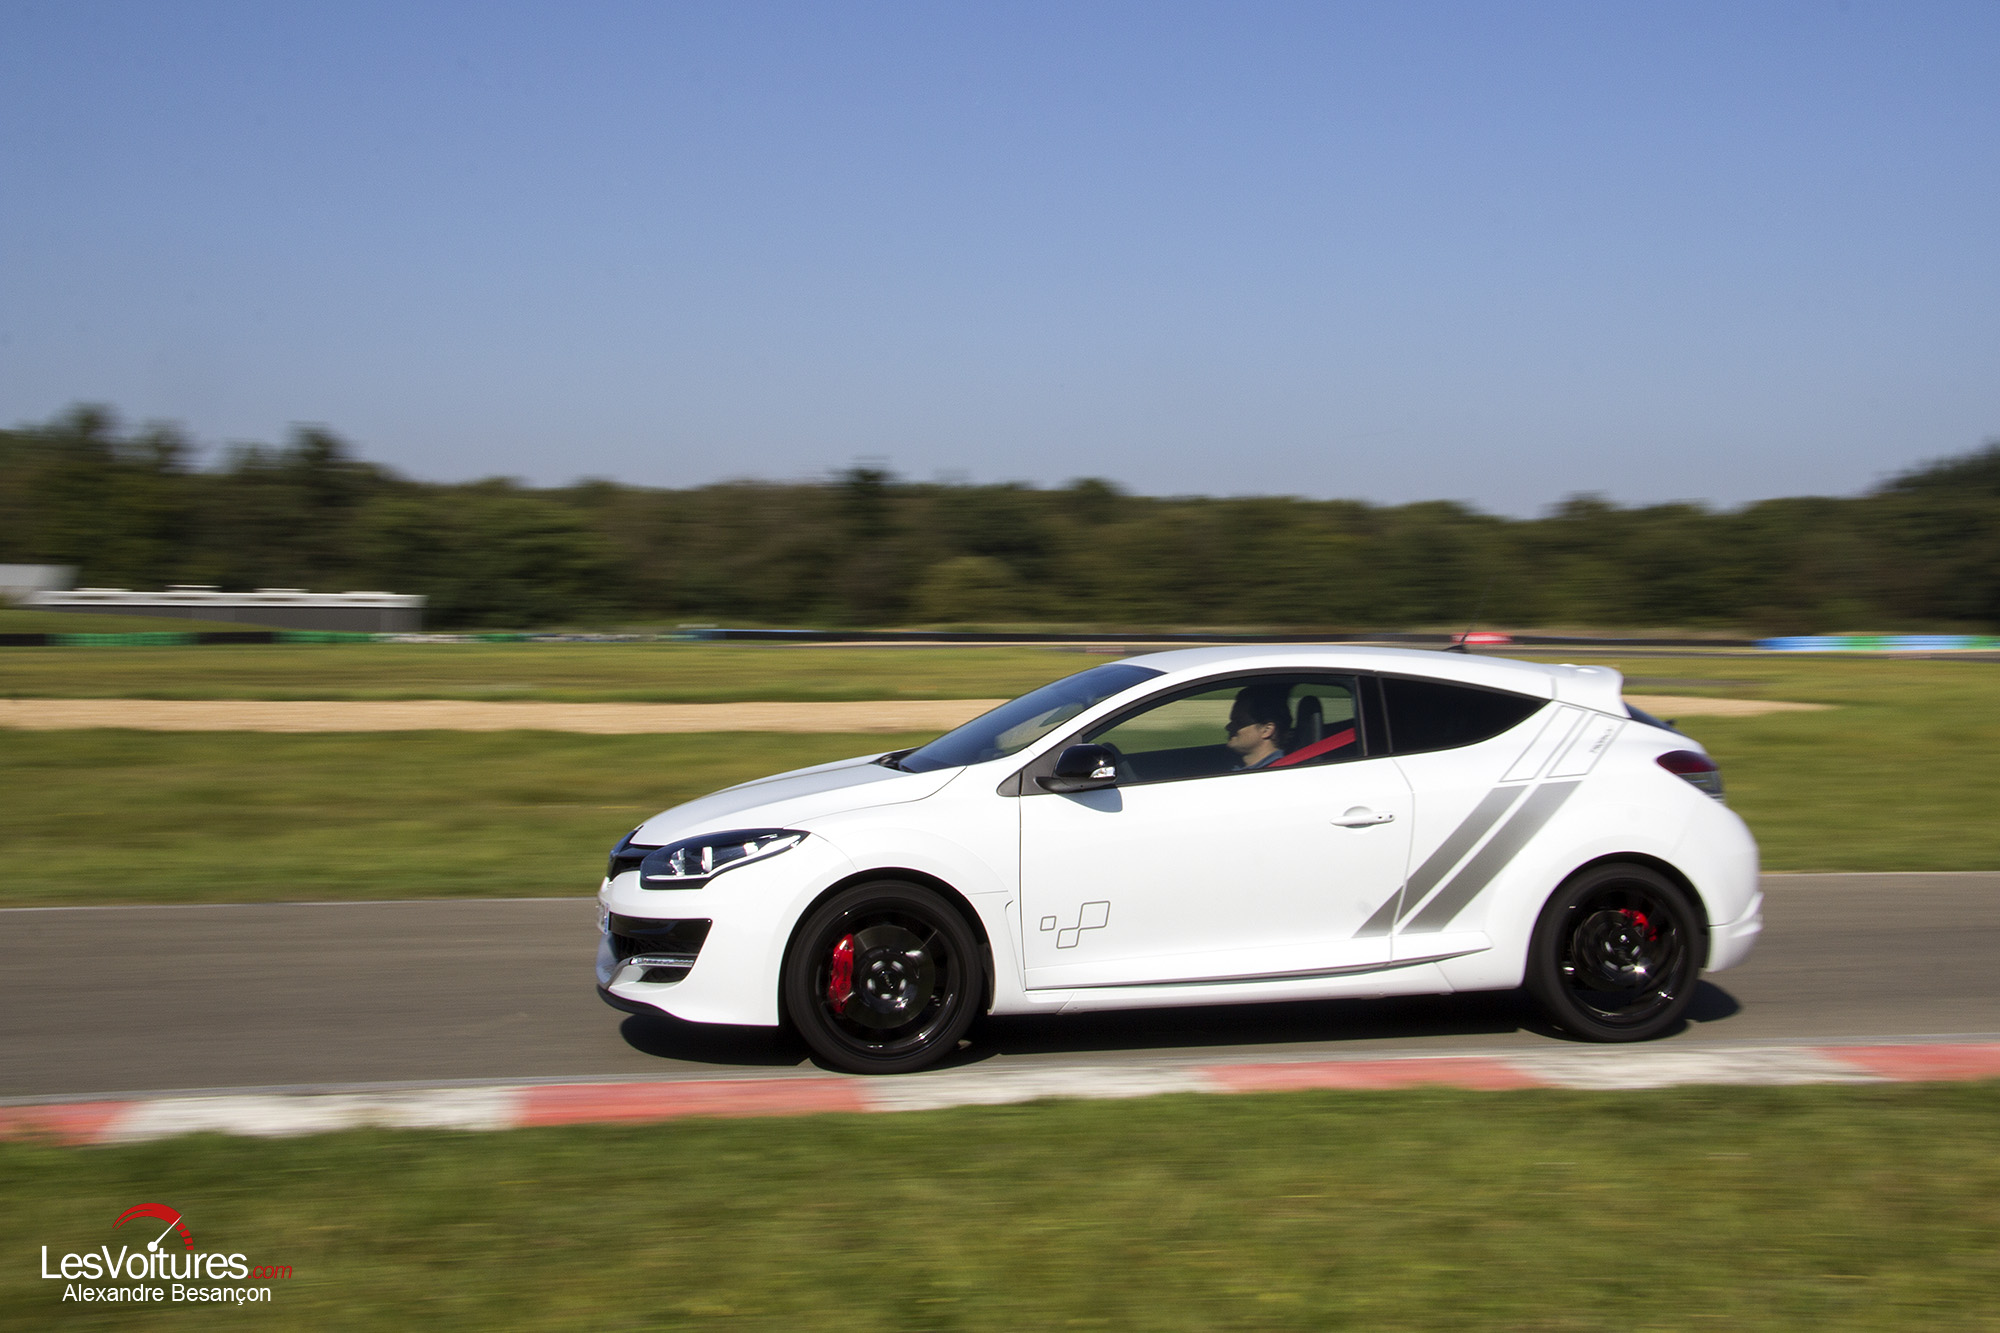 2018 Renault Megane RS 275 Trophy photo - 3